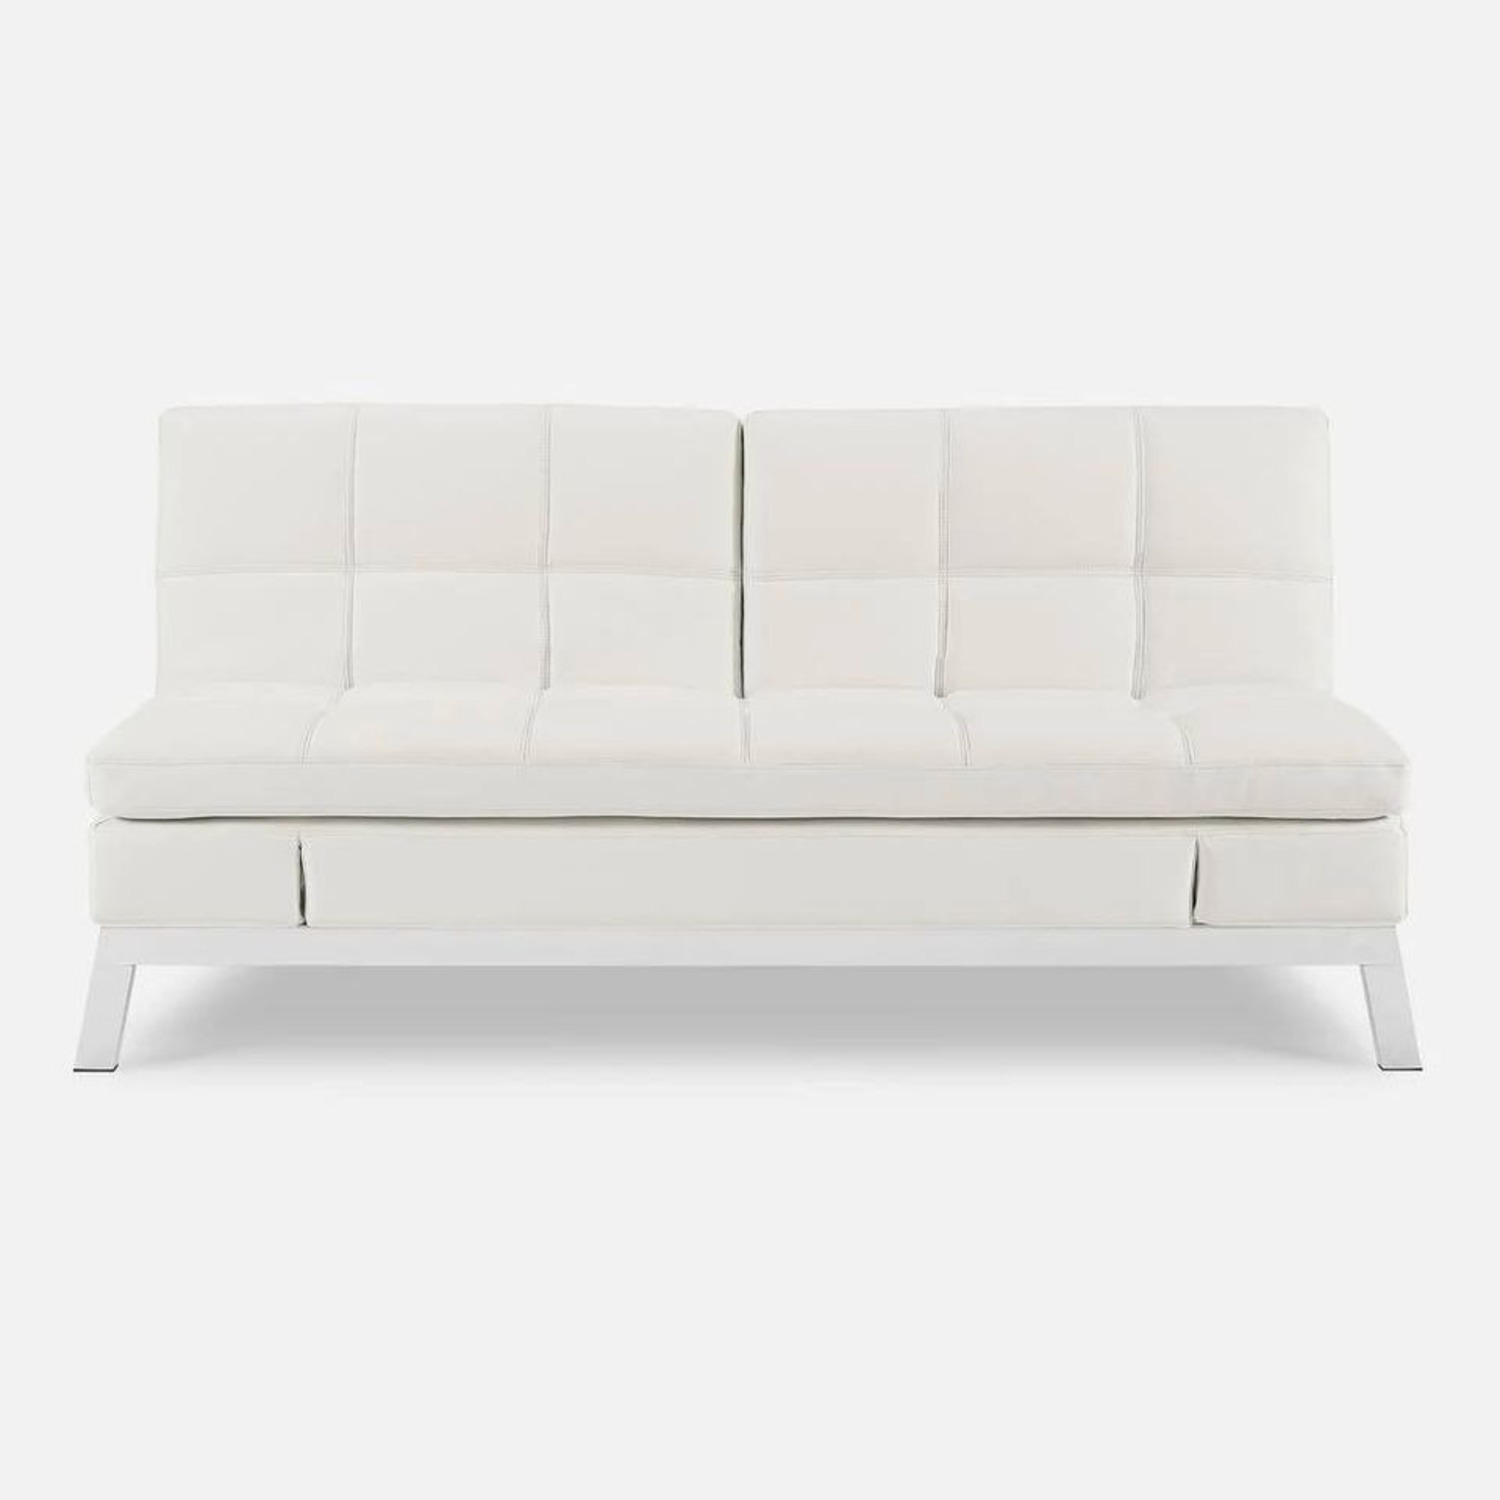 Coddle Toggle Convertible Couch Perl/White Leather - image-3